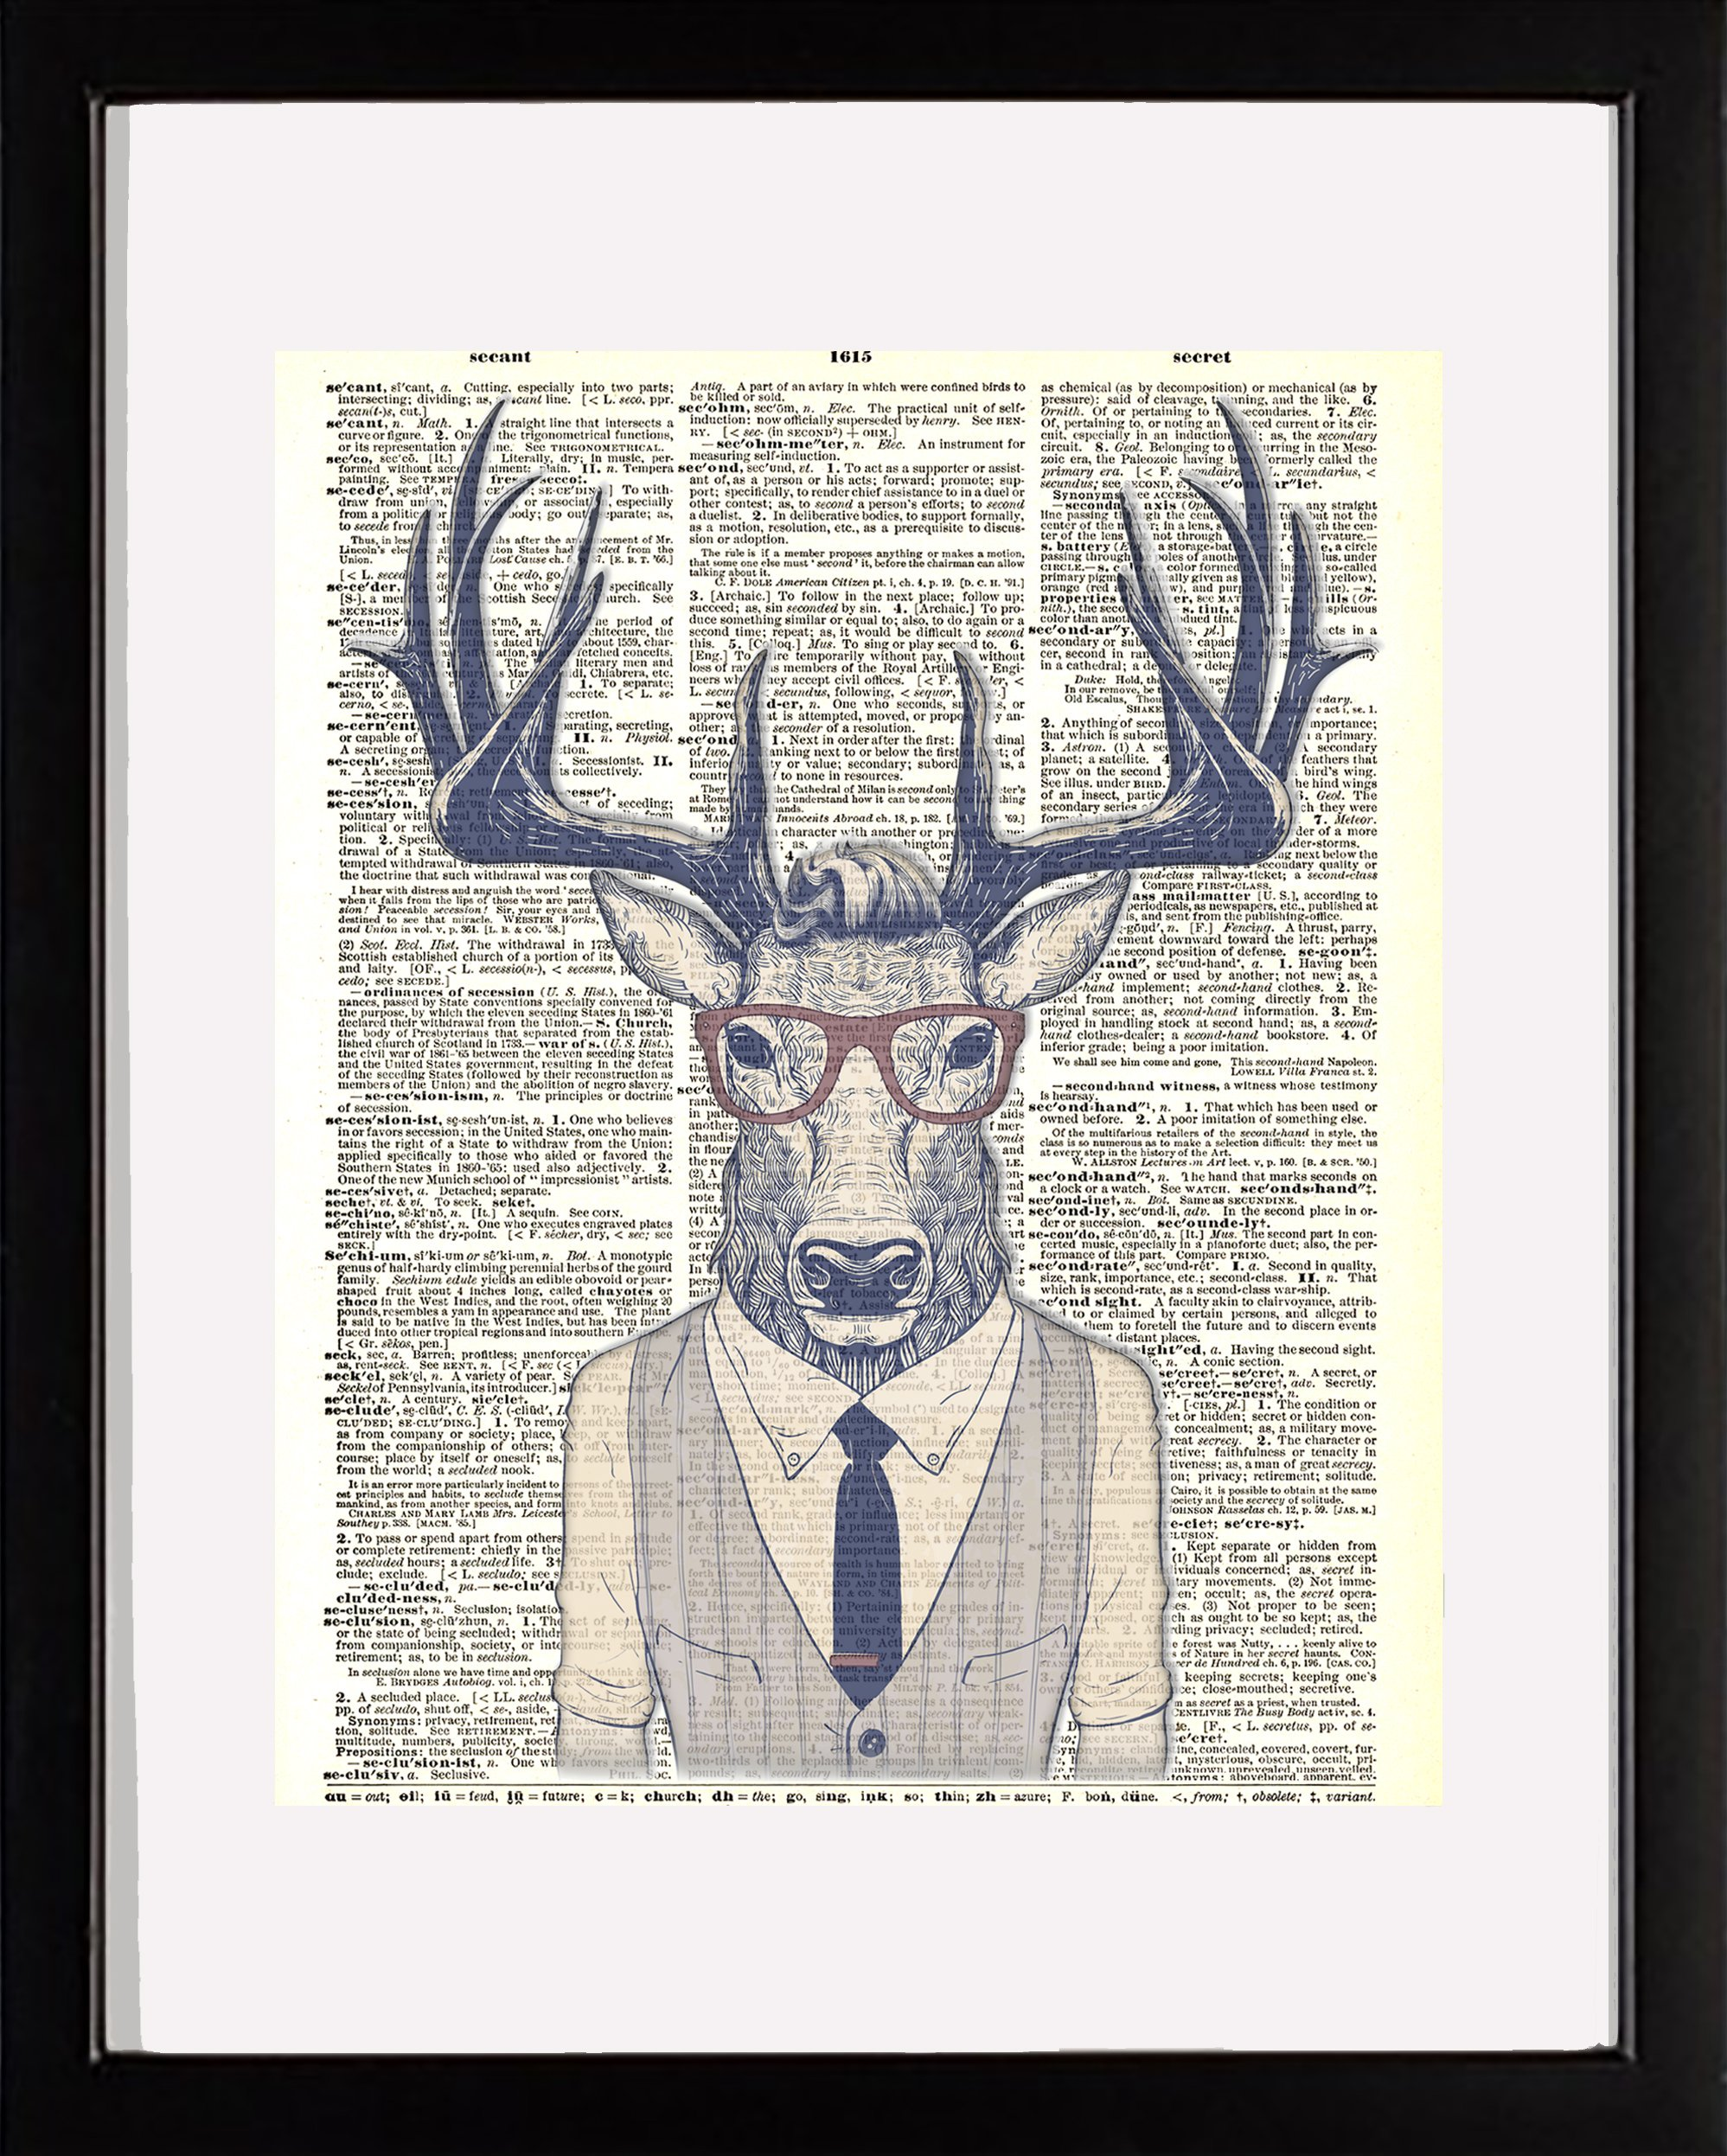 Ombura Hipster Deer - Deer in Vest and Glasses Dictionary Wall Art Print. 8x10 Home Wall Décor. Ideal, Unique Artwork for Men, Women and Teens for Any Animal Art Lover. Frame Not Incl.